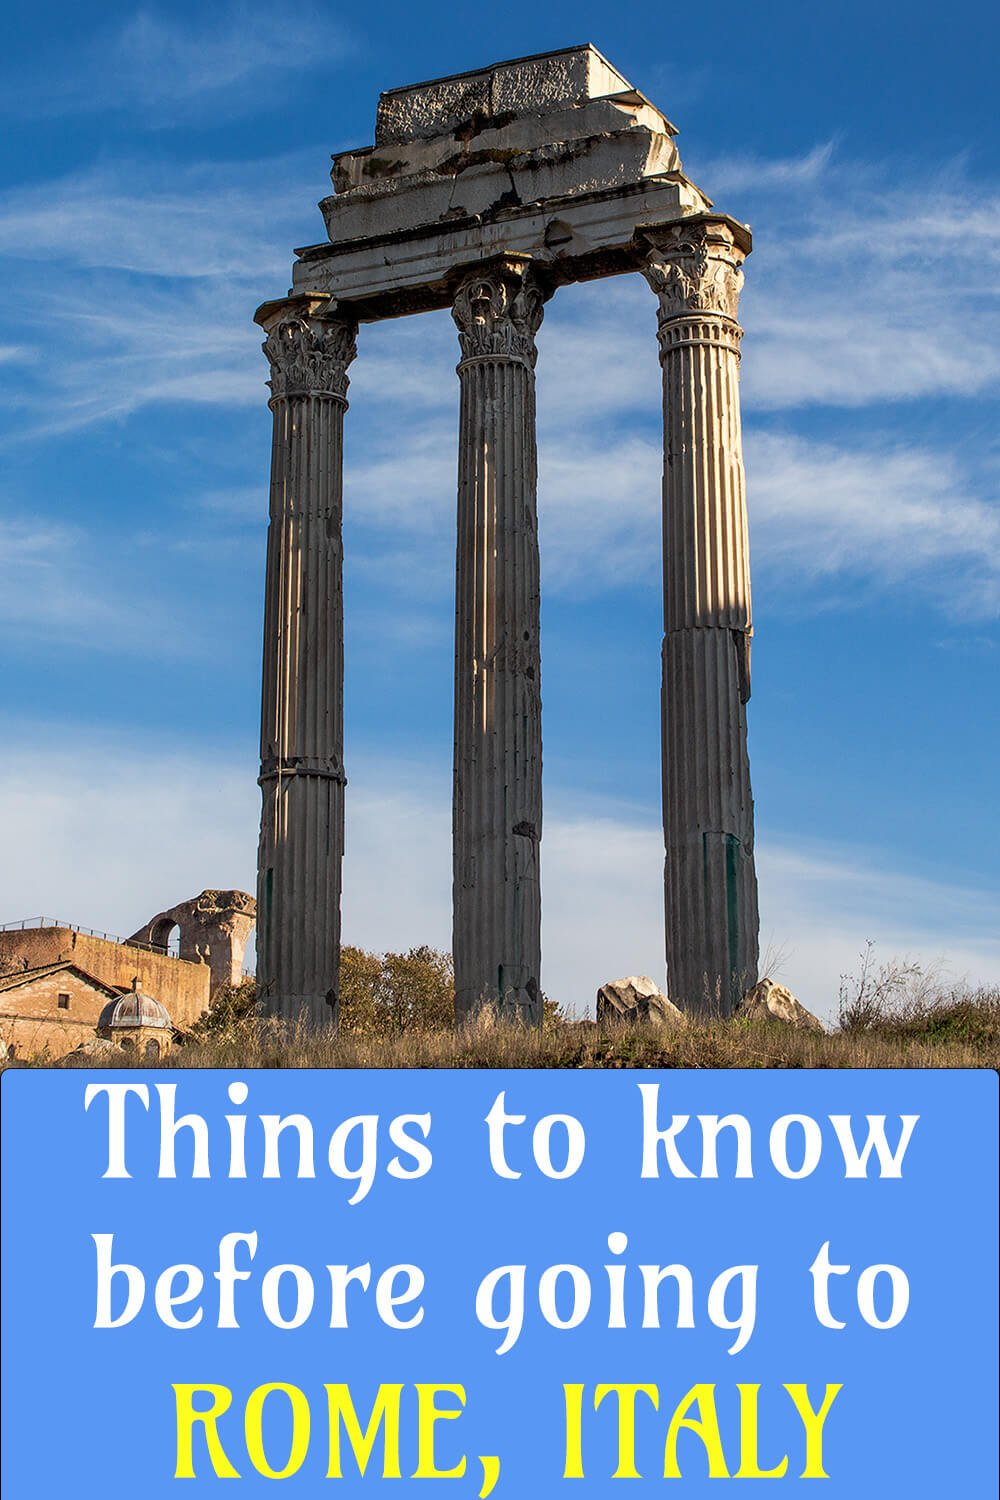 Things to know before going to Rome, Italy | Rome travel tips | Travel advice for Rome, Italy